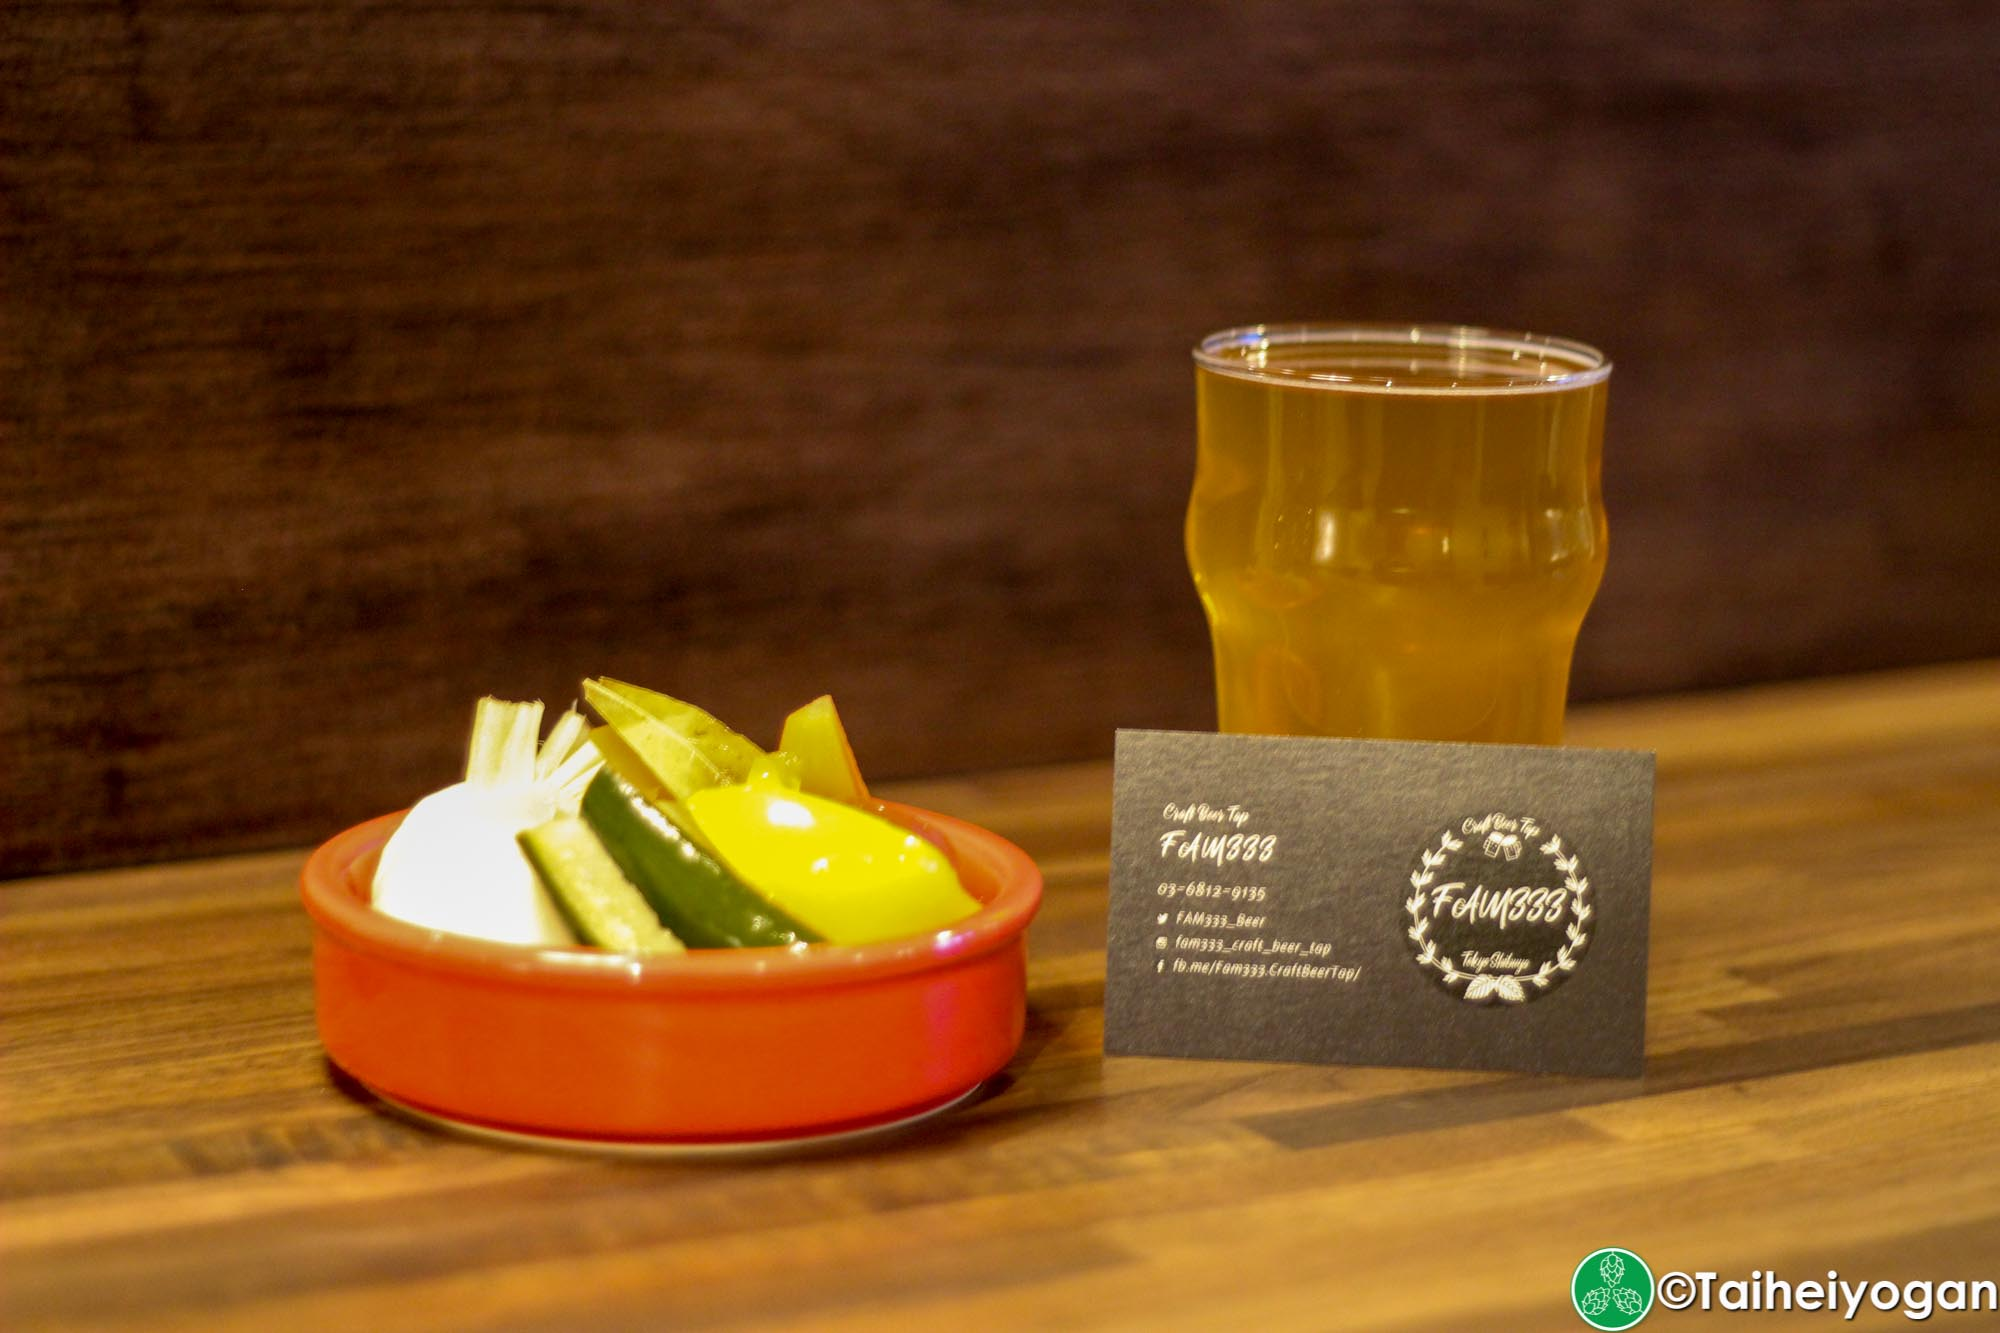 FAM333 - Interior - Menu - Pickles & Craft Beer